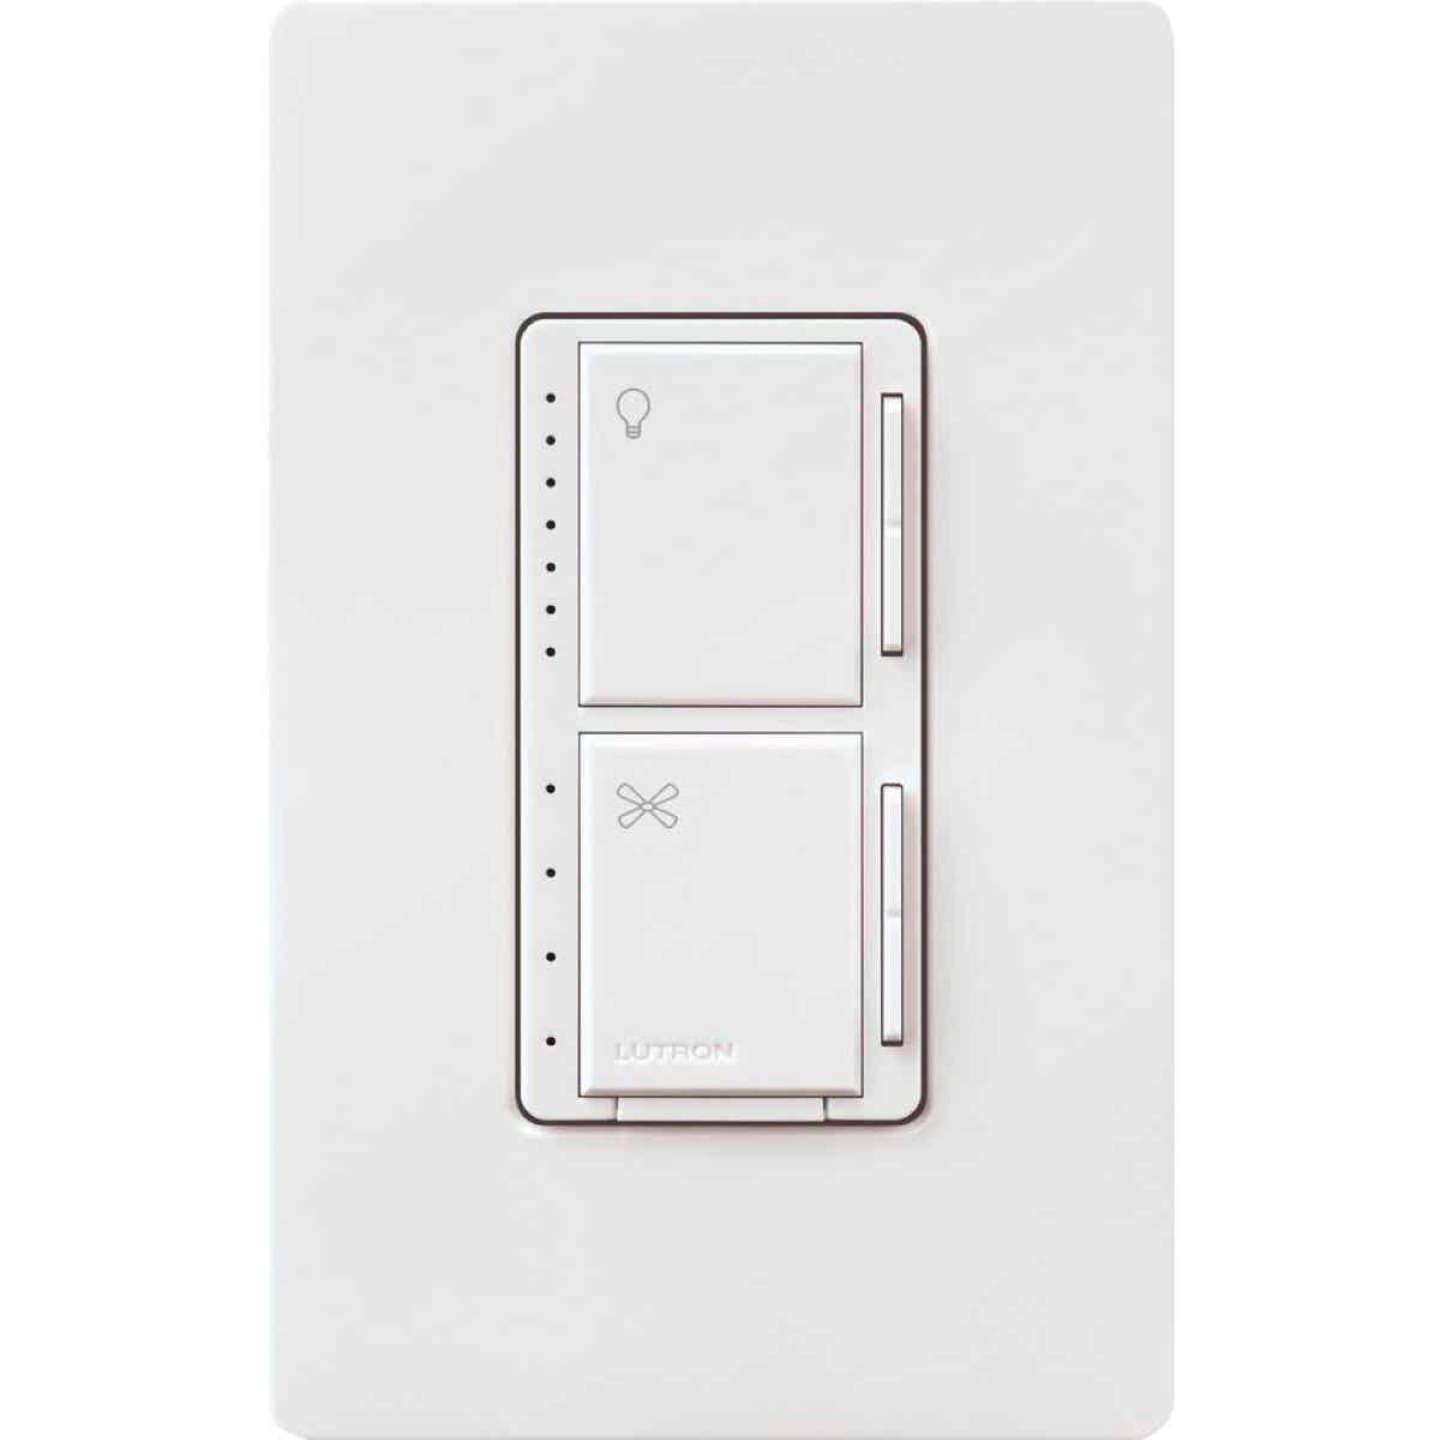 Lutron Maestro White Dimmer & Fan Control Switch Image 6